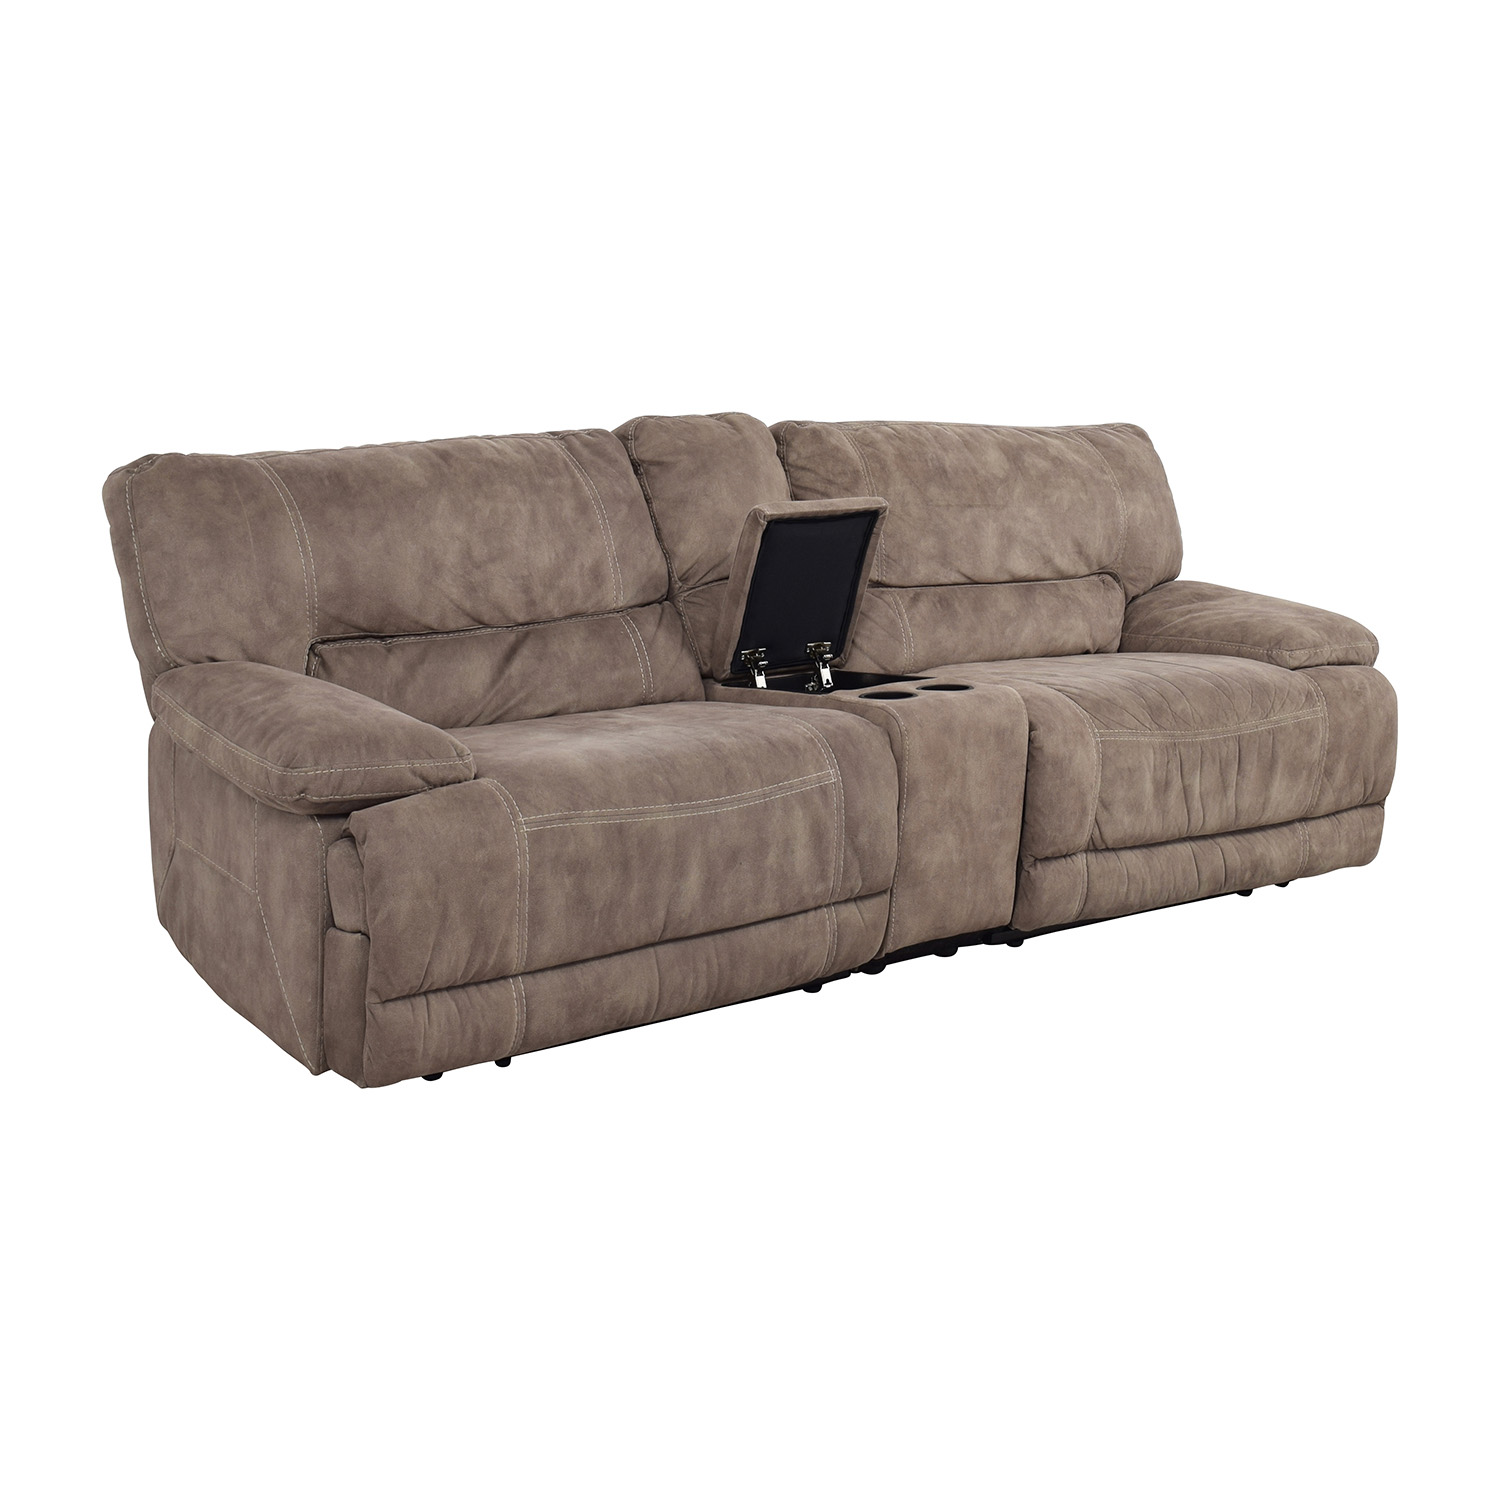 Raymour & Flanigan Grey Power Recliner with Console sale